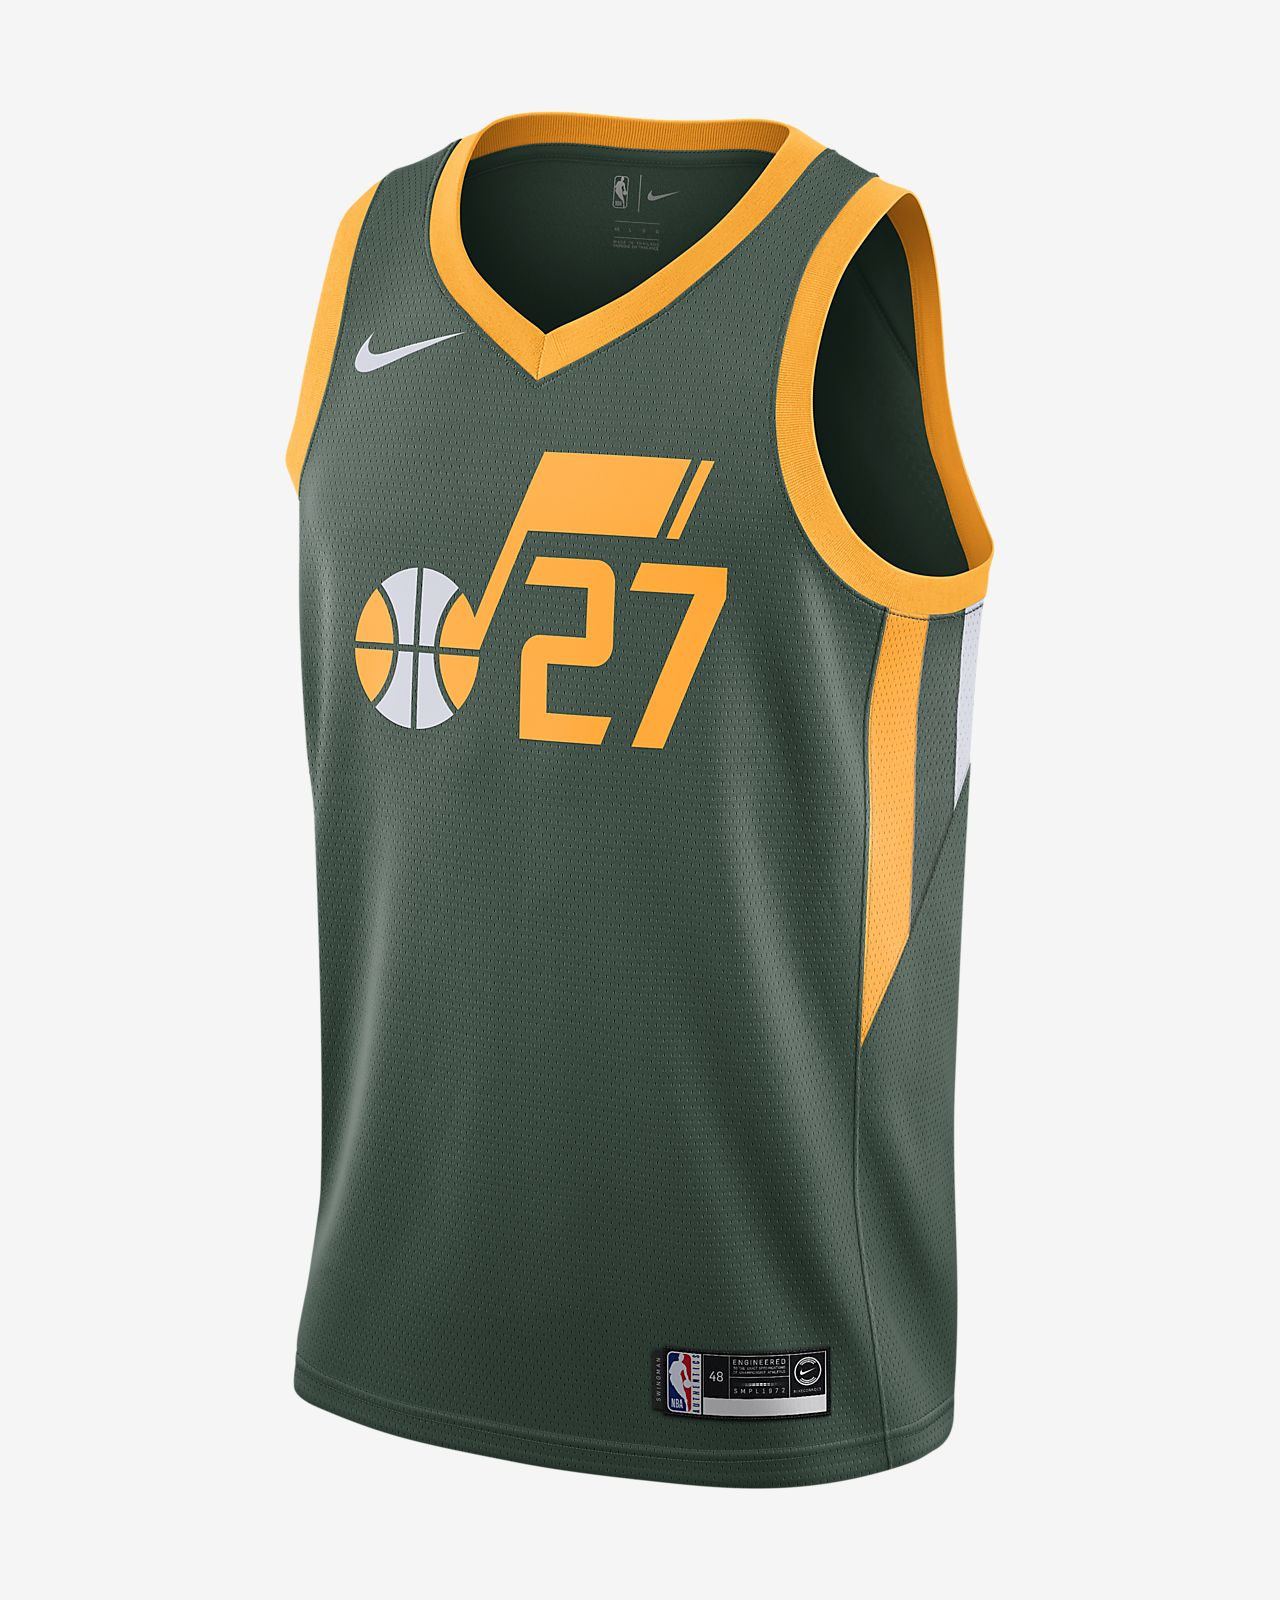 26d3e0220ccc Men s Nike NBA Connected Jersey. Rudy Gobert Earned Statement Edition  Swingman (Utah Jazz)